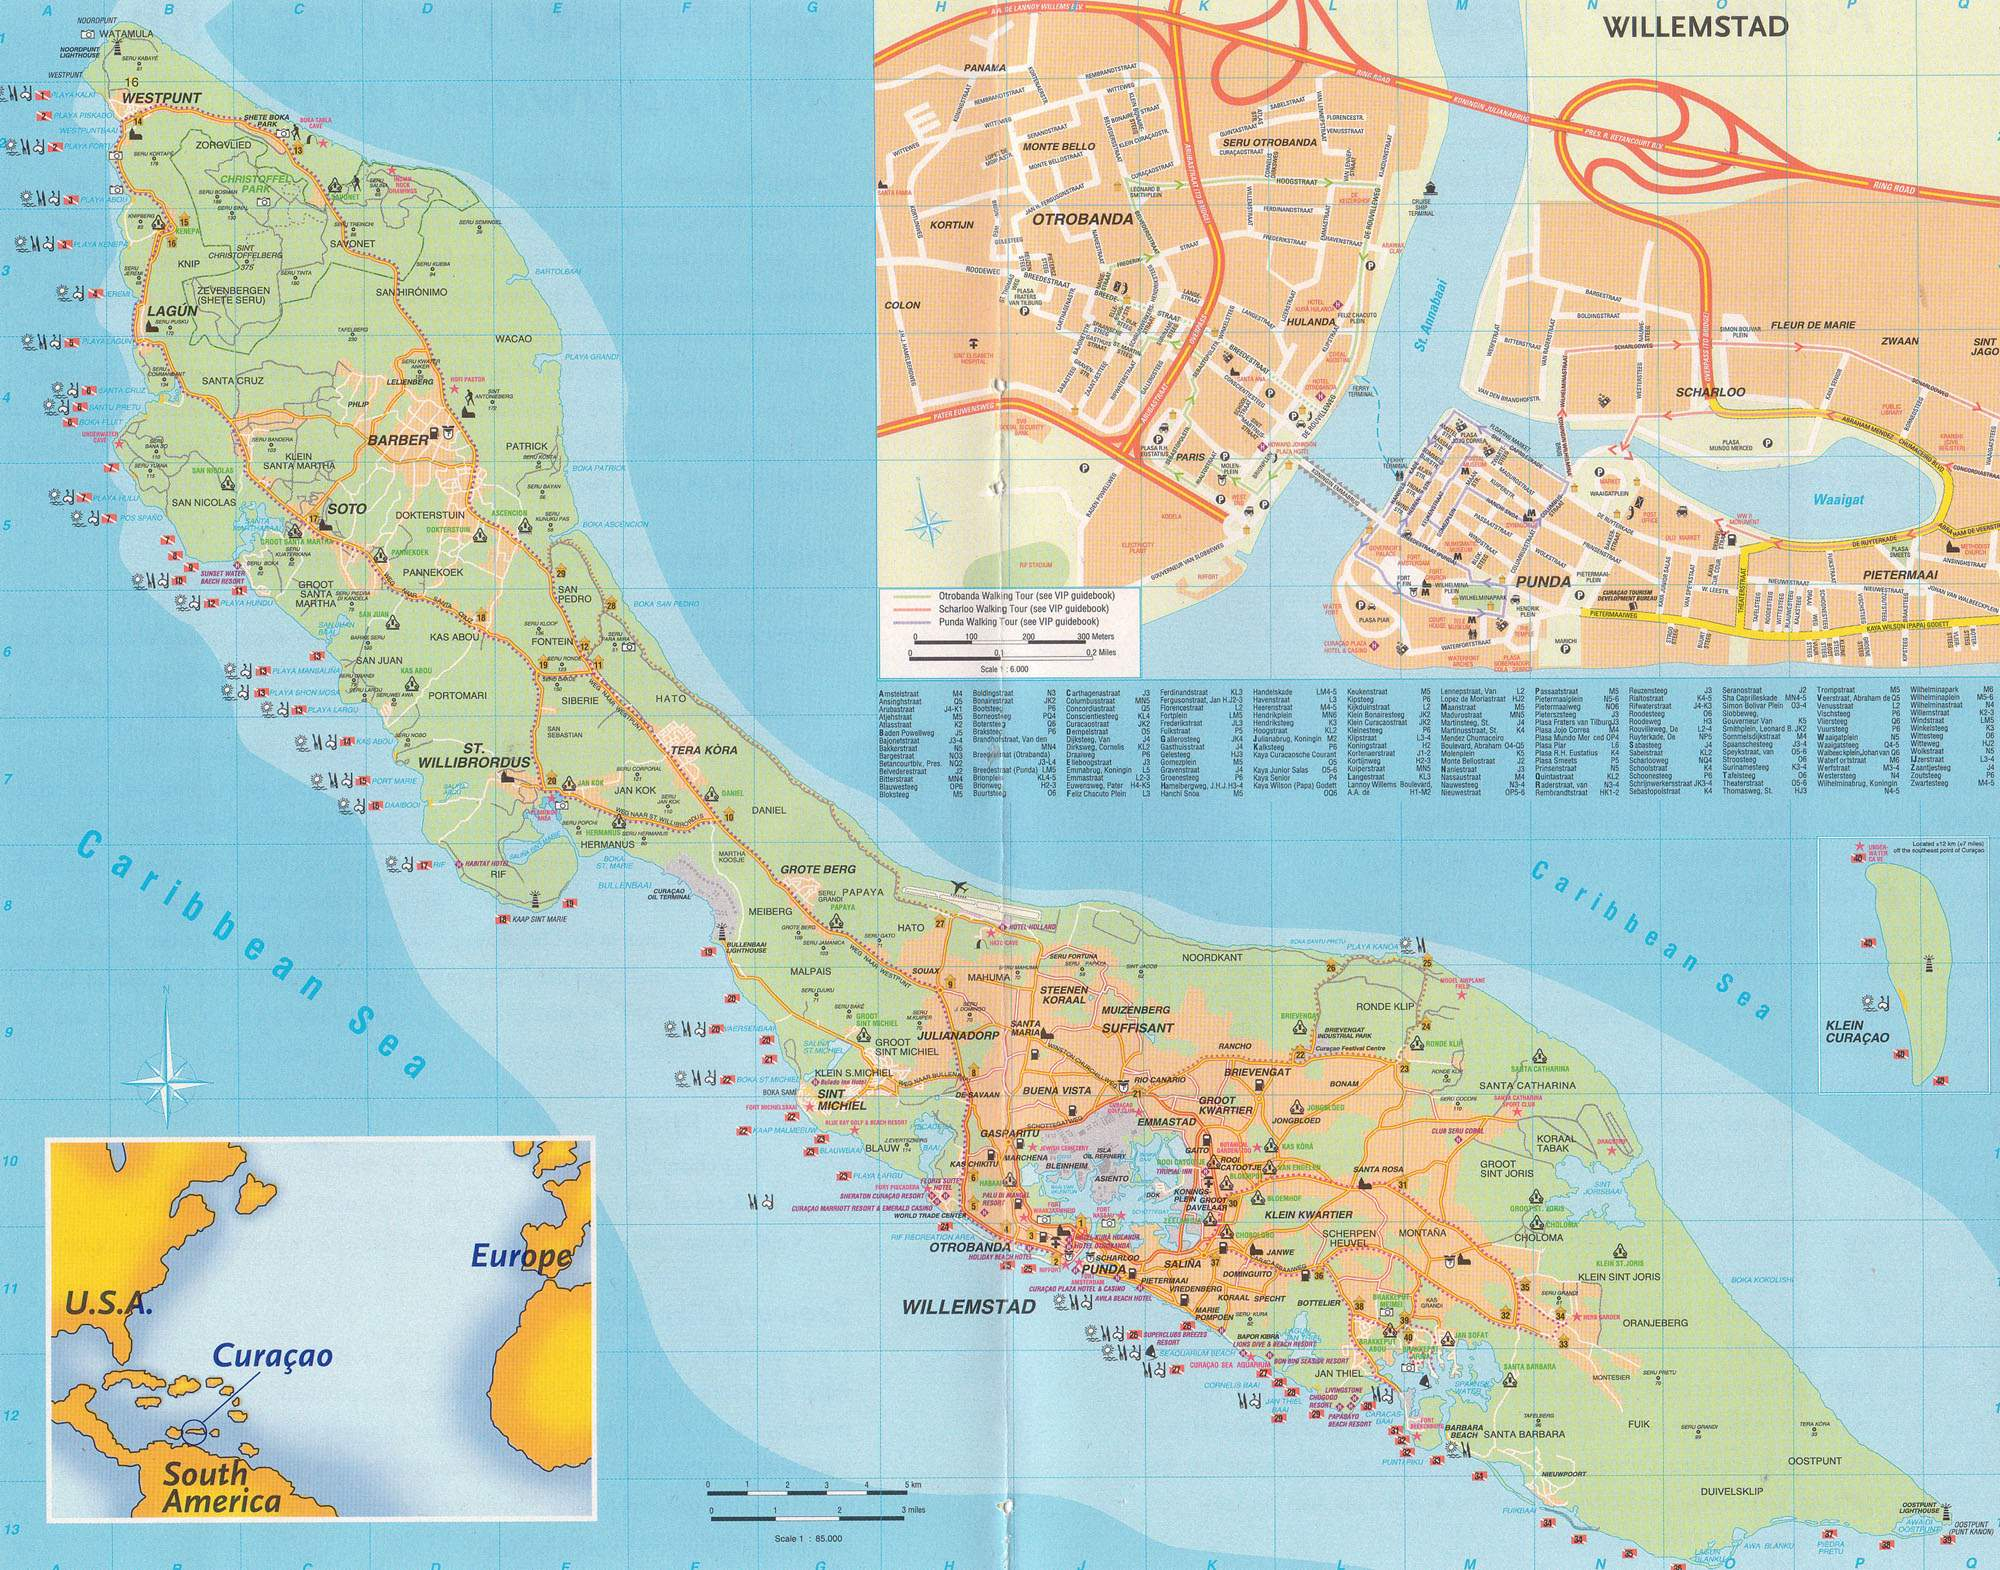 Large Curacao Maps For Free Download And Print | High-Resolution And - Printable Road Map Of St Maarten